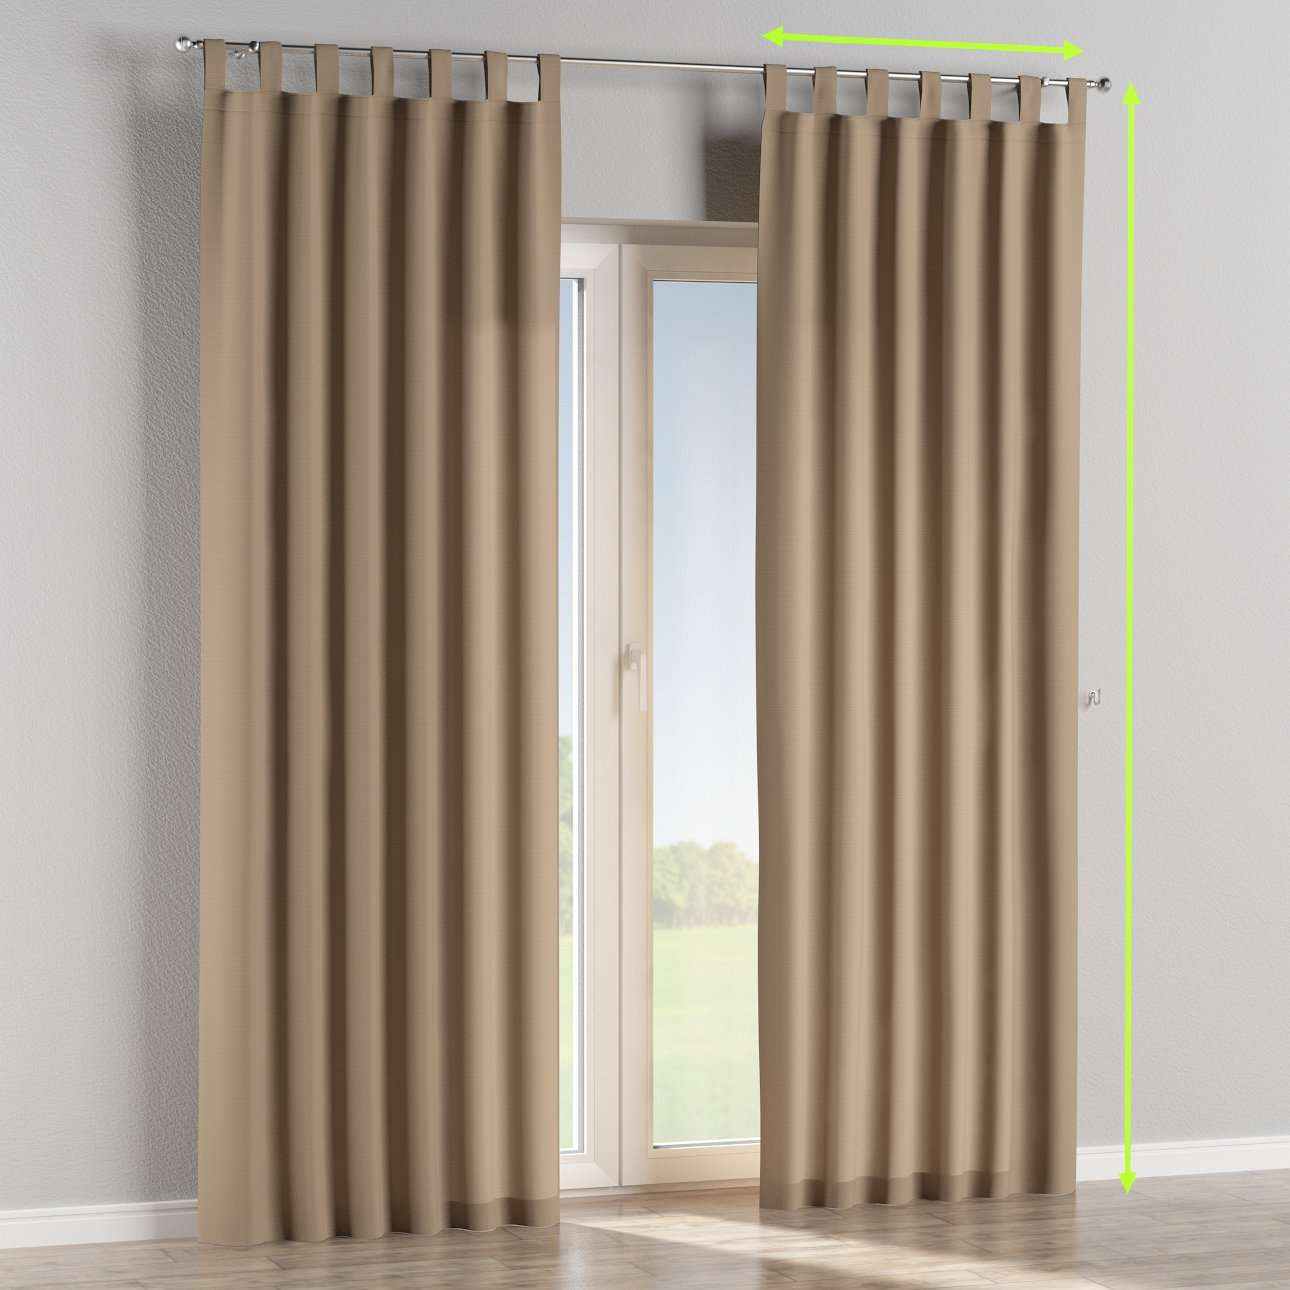 Tab top lined curtains in collection Panama Cotton, fabric: 702-28